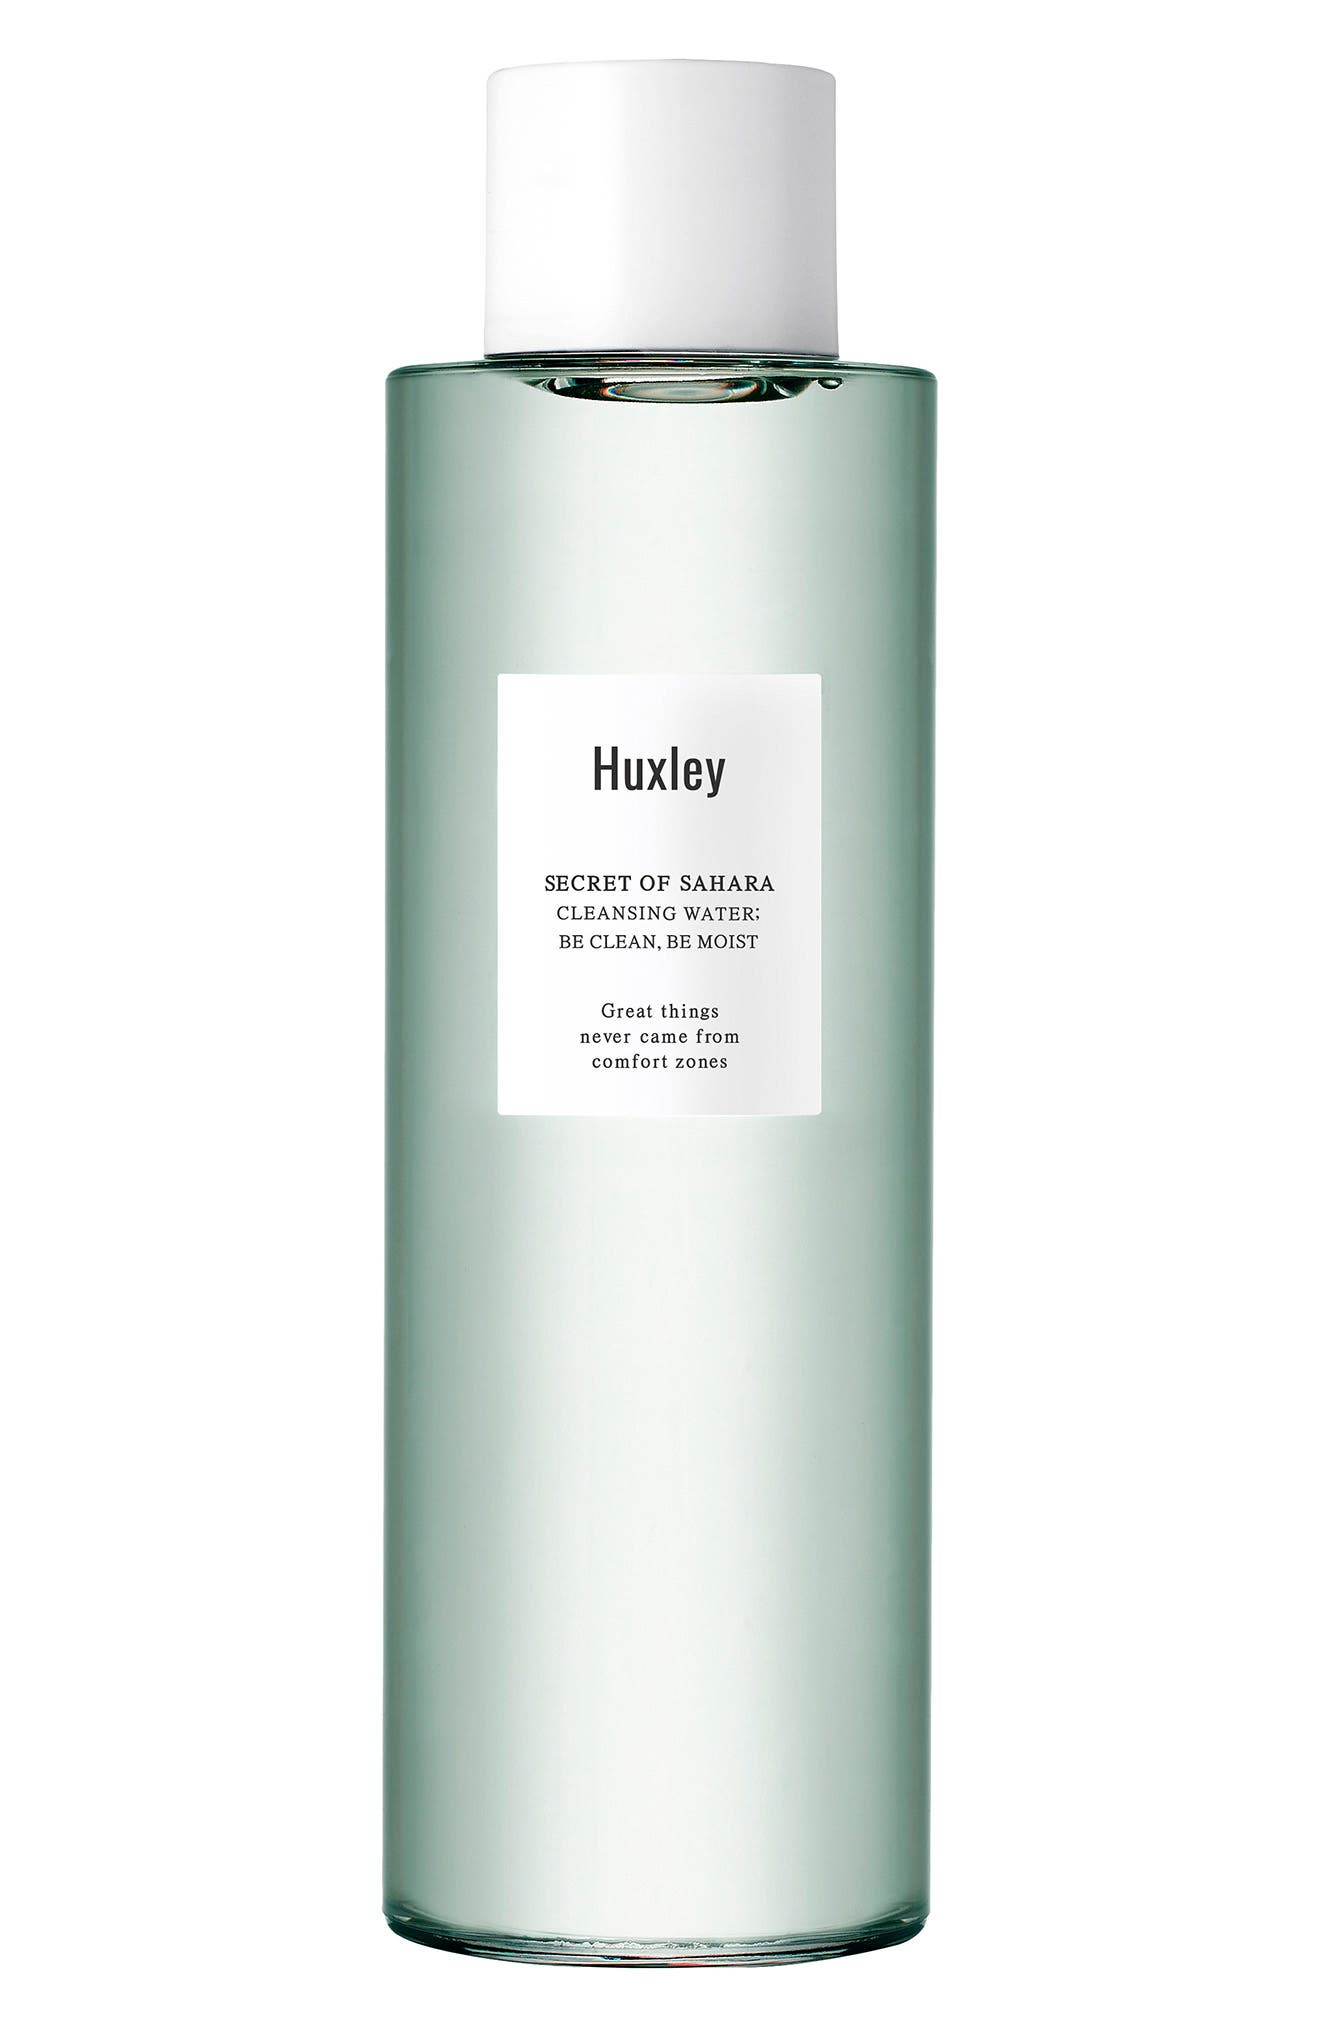 Main Image - Huxley Secret of Sahara - Be Clean Be Moist Cleansing Water